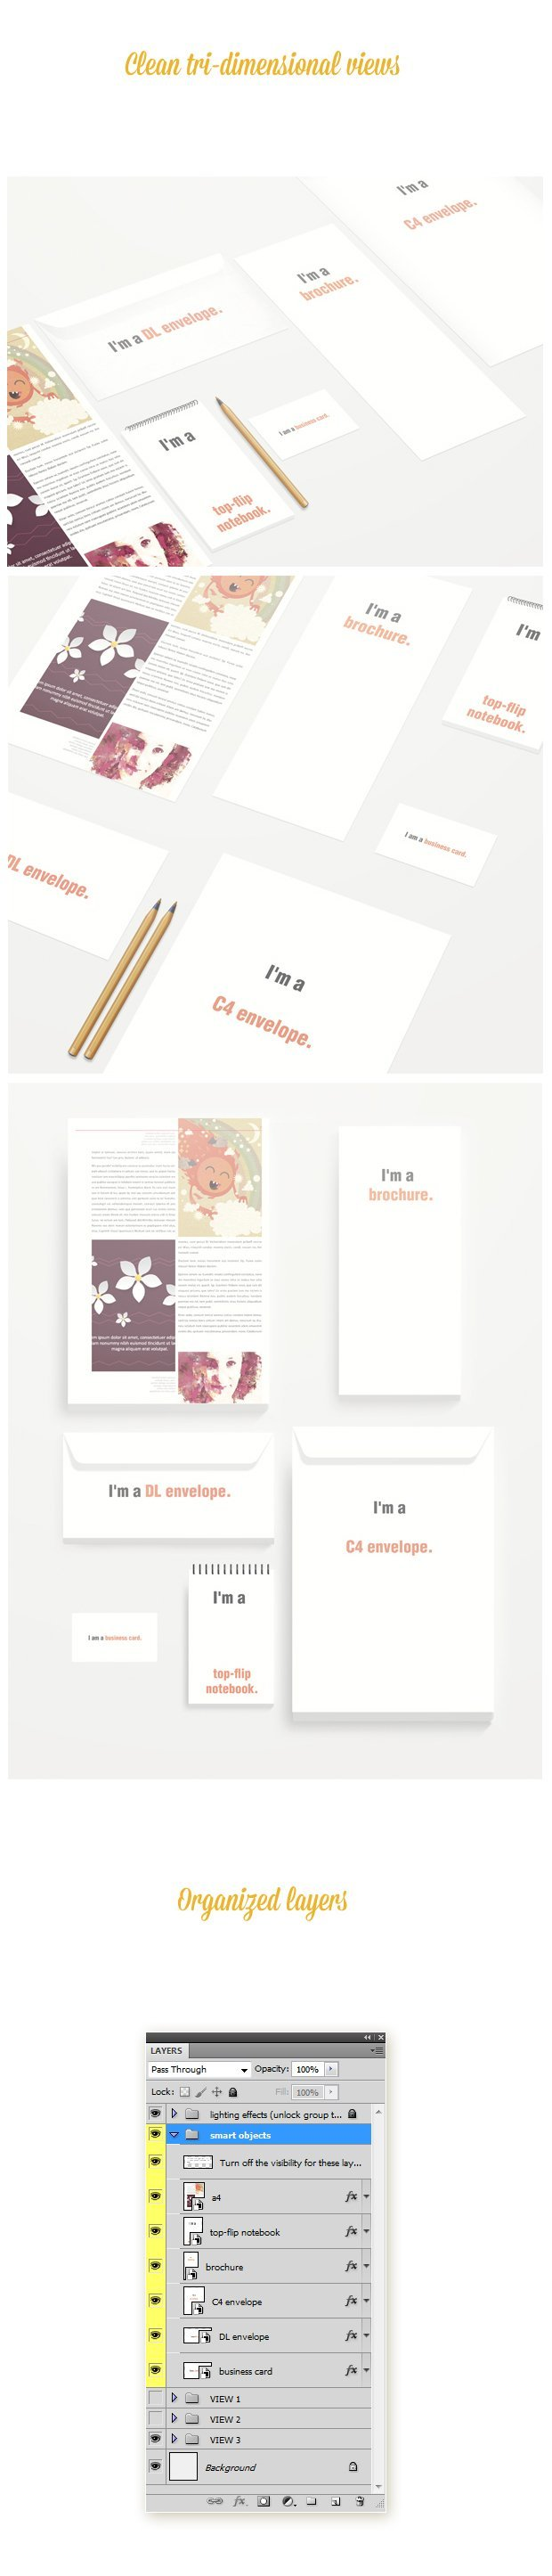 Fine 1 Page Resumes Examples Thick 100th Day Hat Template Regular 1099 Int Template 11 Vuze Search Templates Youthful 12 Hour Schedule Template Dark14 Year Old Resumes The Super Premium Print Templates Bundle   600 Illustrations ..